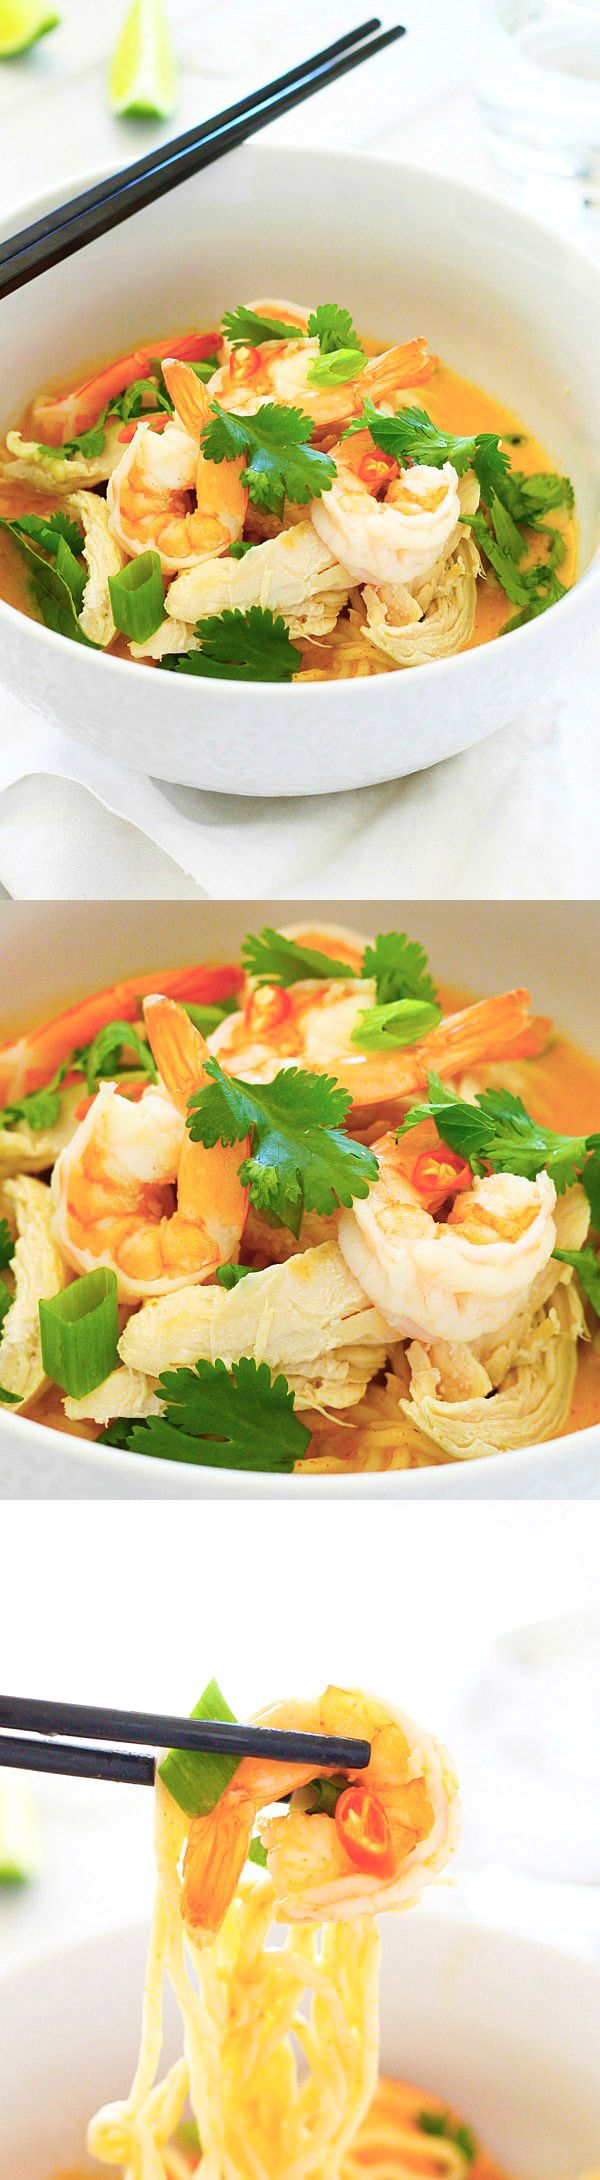 Coconut Curry Noodle Bowl – incredibly delicious, light, and refreshing Coconut Curry Noodle Bowl topped with chicken, shrimp, and herbs | rasamalaysia.com